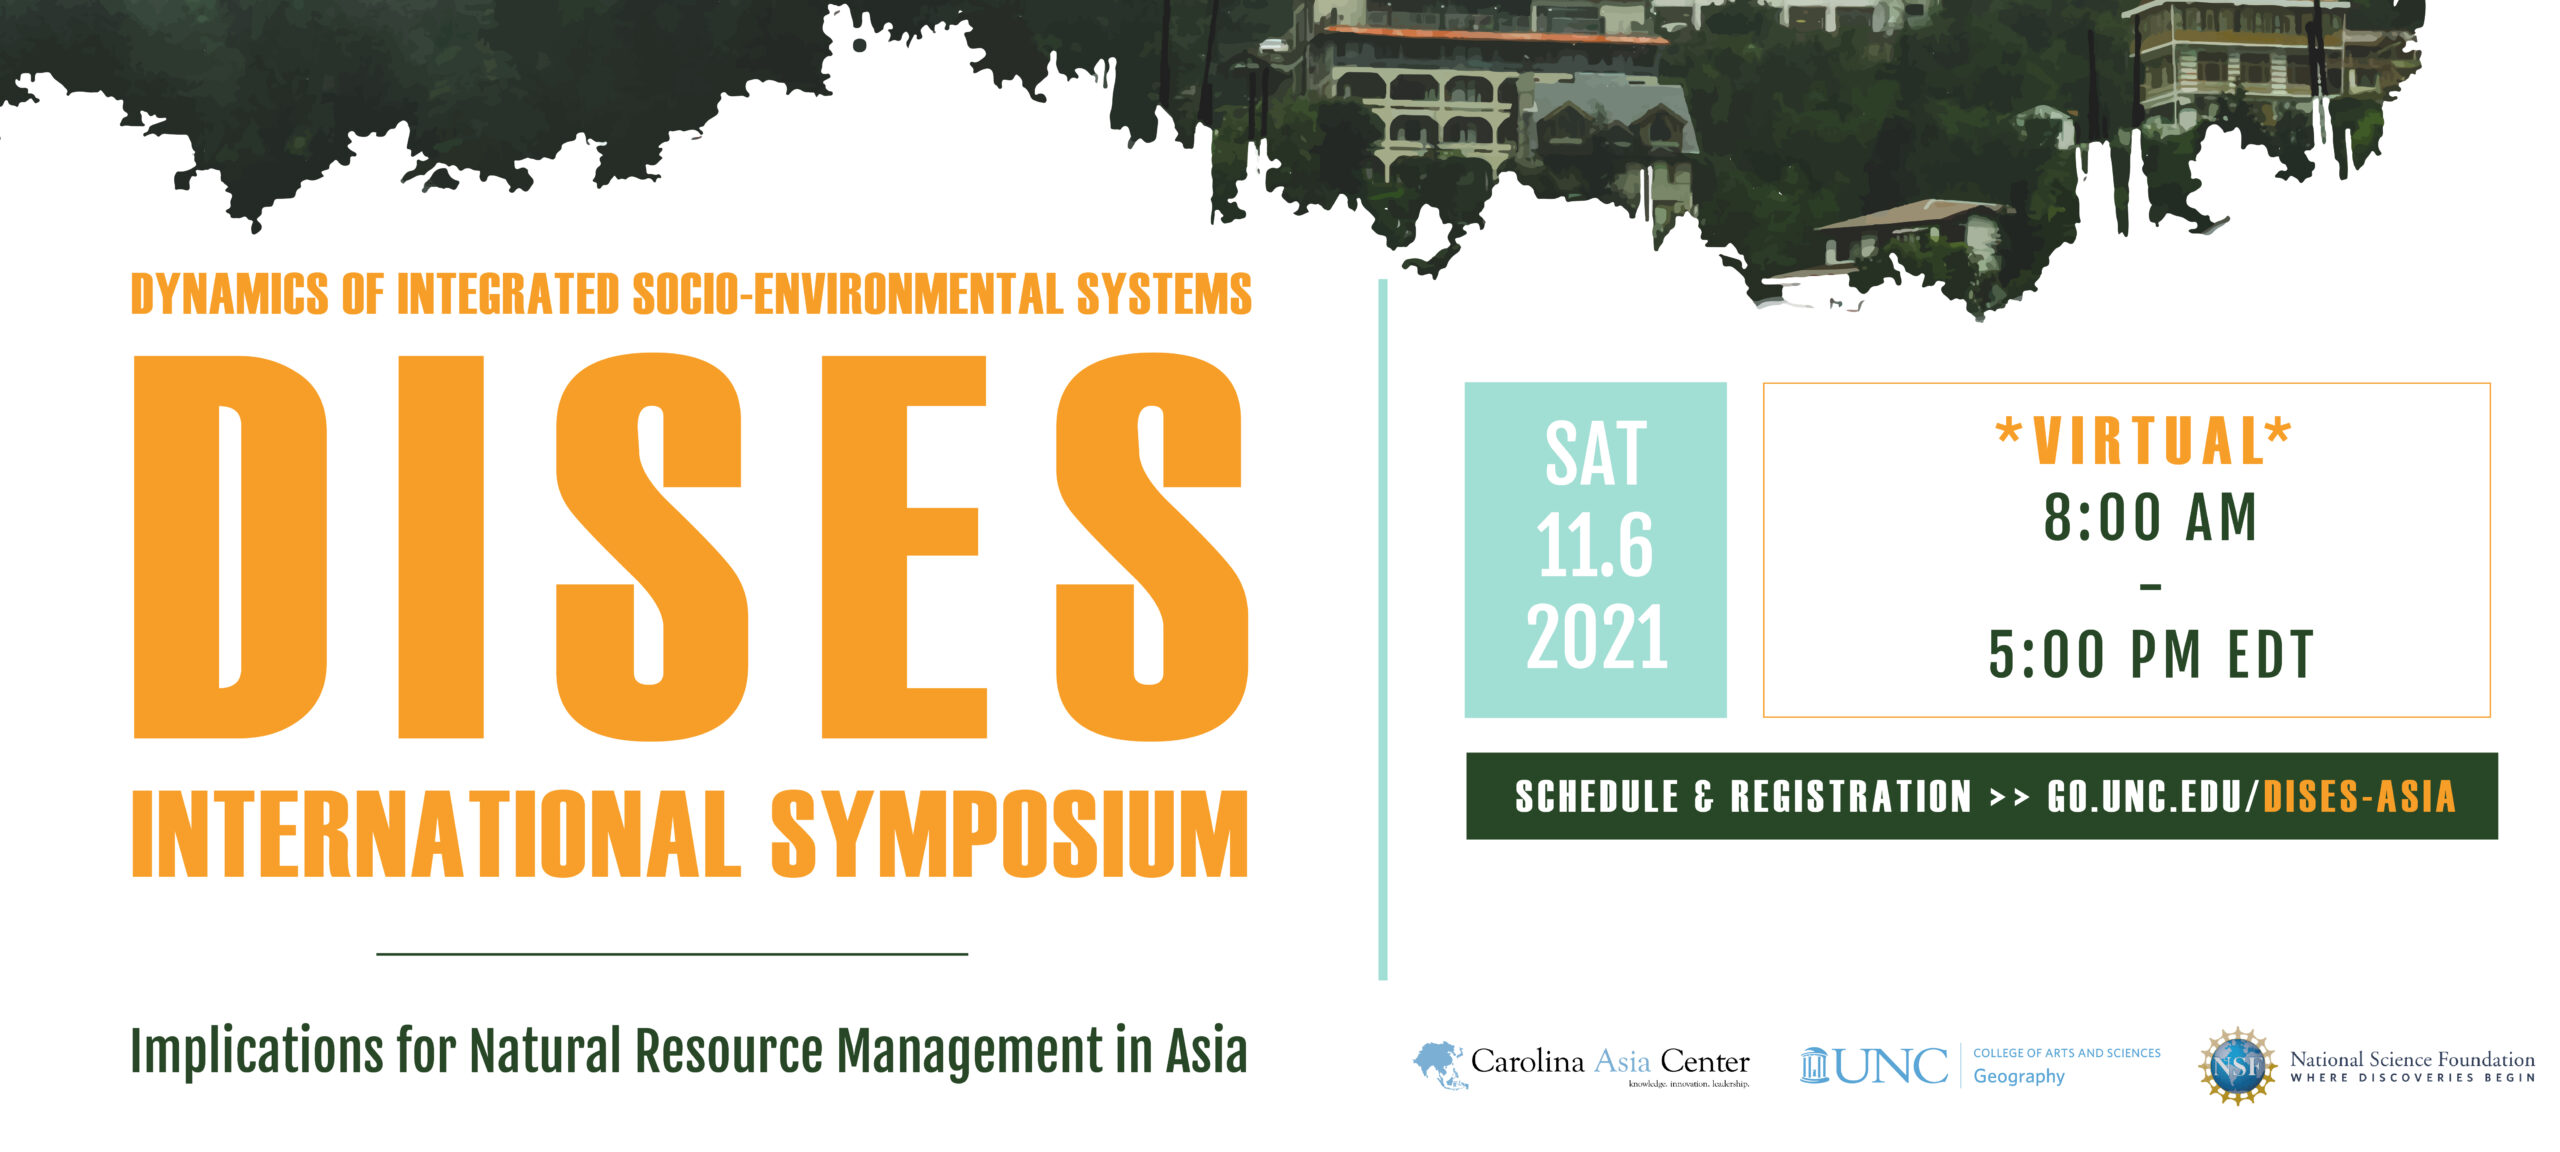 Dynamics of Integrated Socio-Environmental Systems International Symposium: Implications for Natural Resource Management in Asia